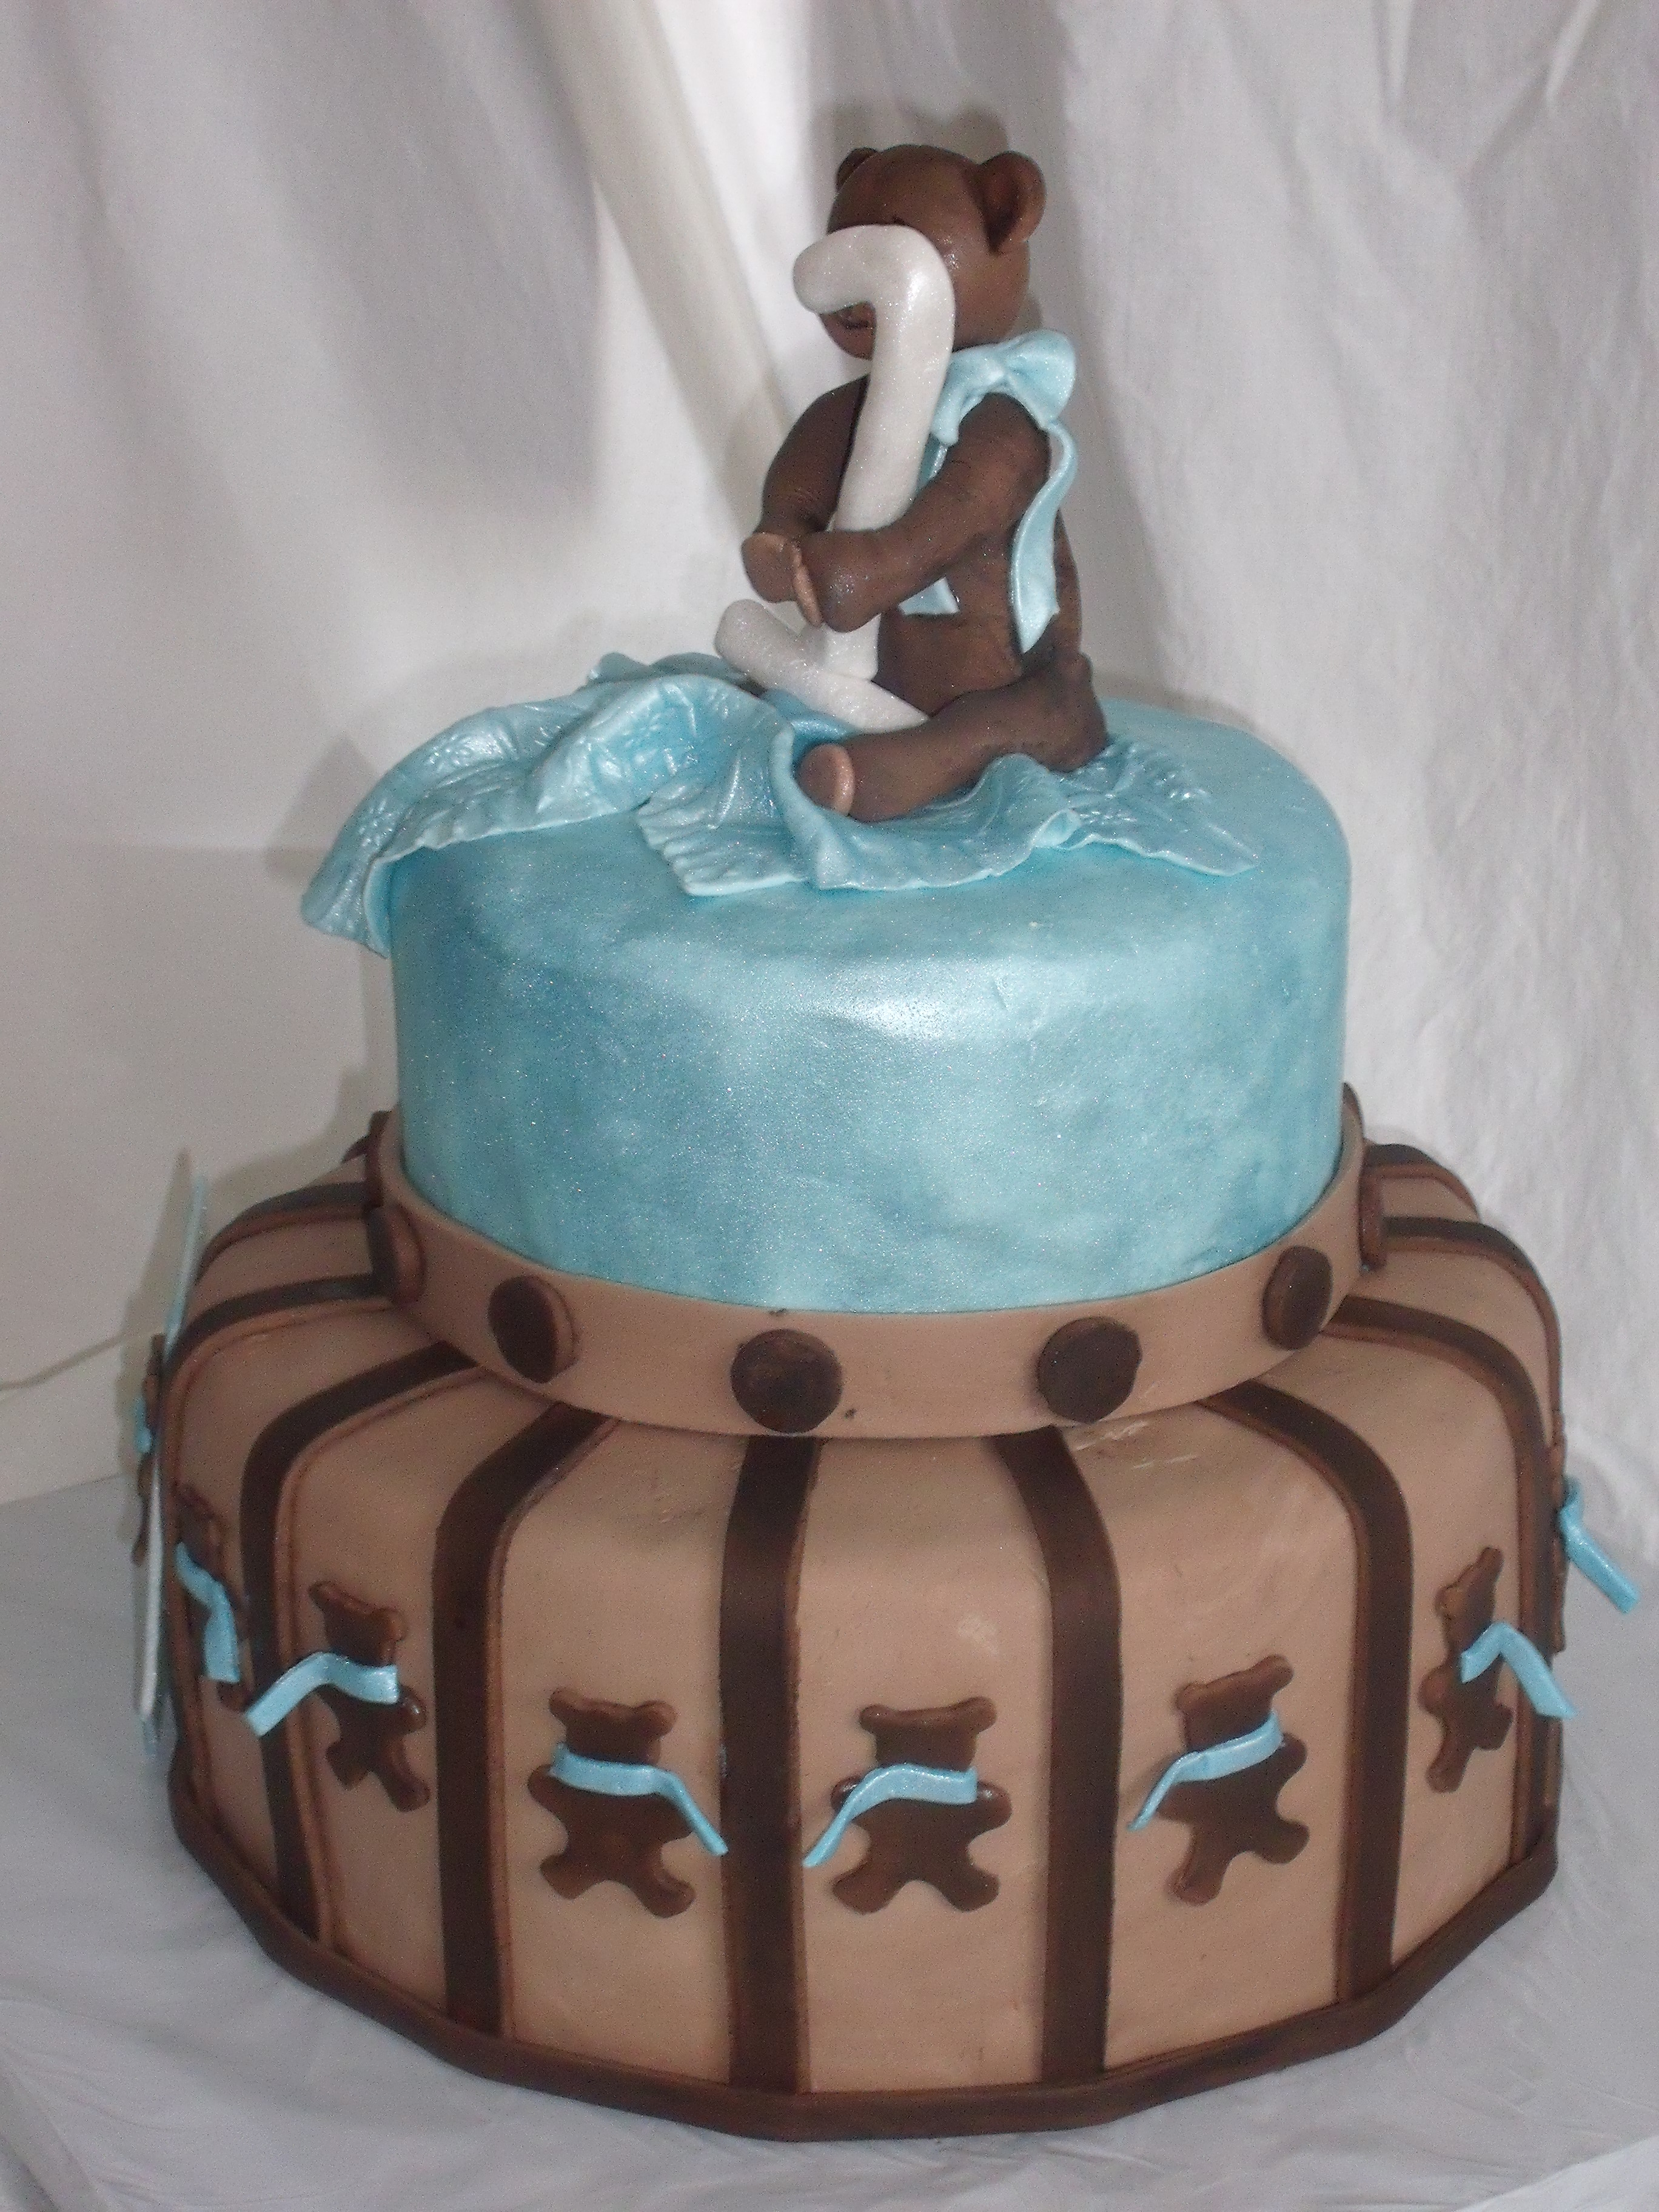 Blue and Brown Teddy Bear Themed Baby Shower Cake designed by Kate